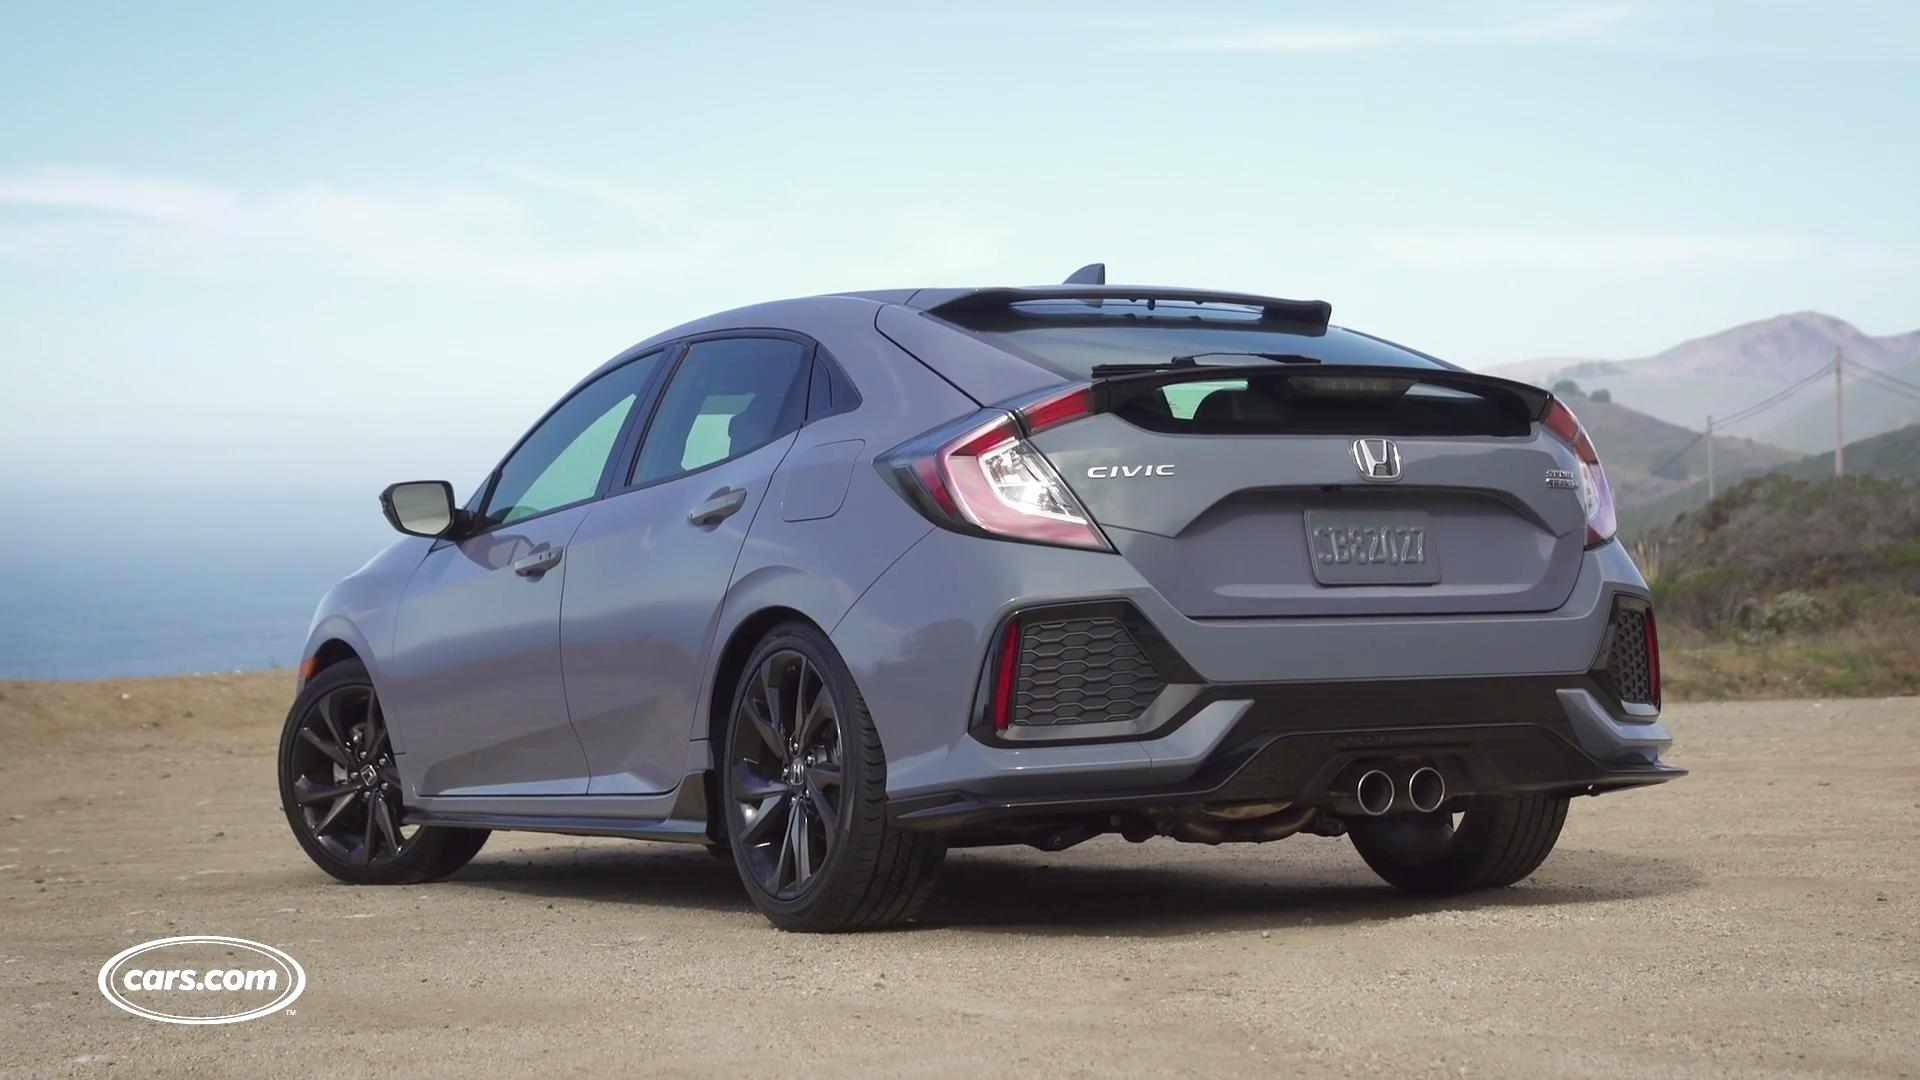 Cars.com's Brian Wong takes a first look at the 2017 Honda Civic Hatchback.